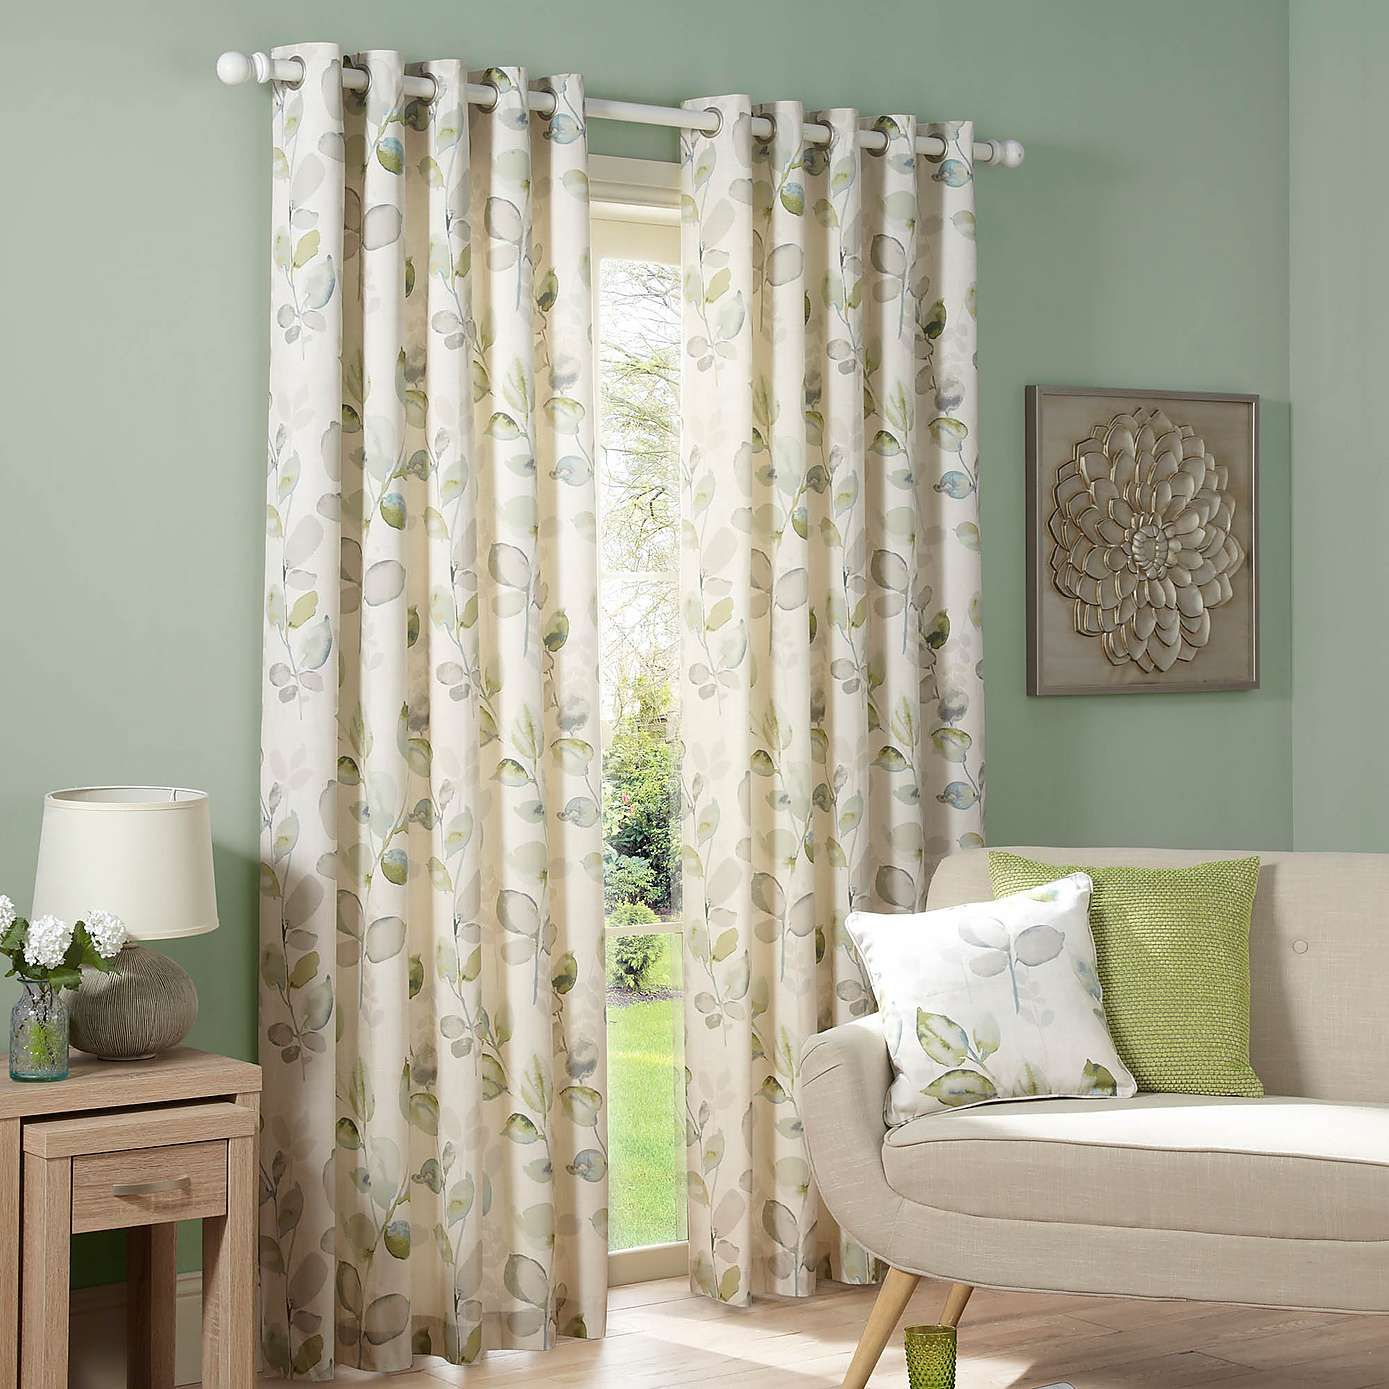 Green bedroom curtains - Ezra Green Lined Eyelet Curtains Dunelm